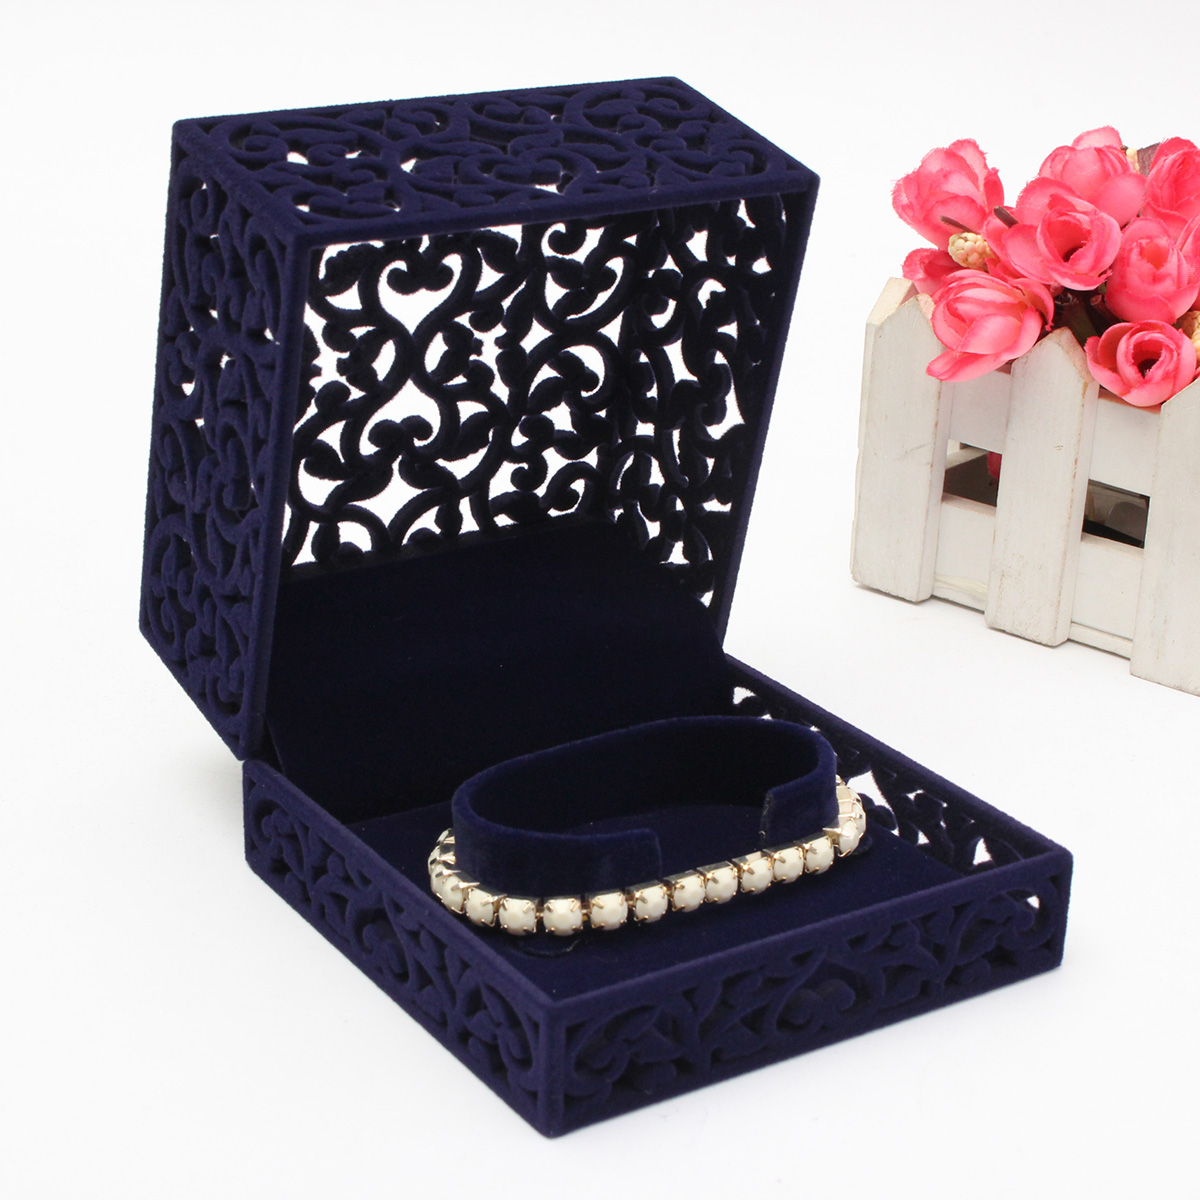 Velvet Necklace Ring Bracelet Pendant Charm Jewelry Gift Collect Box